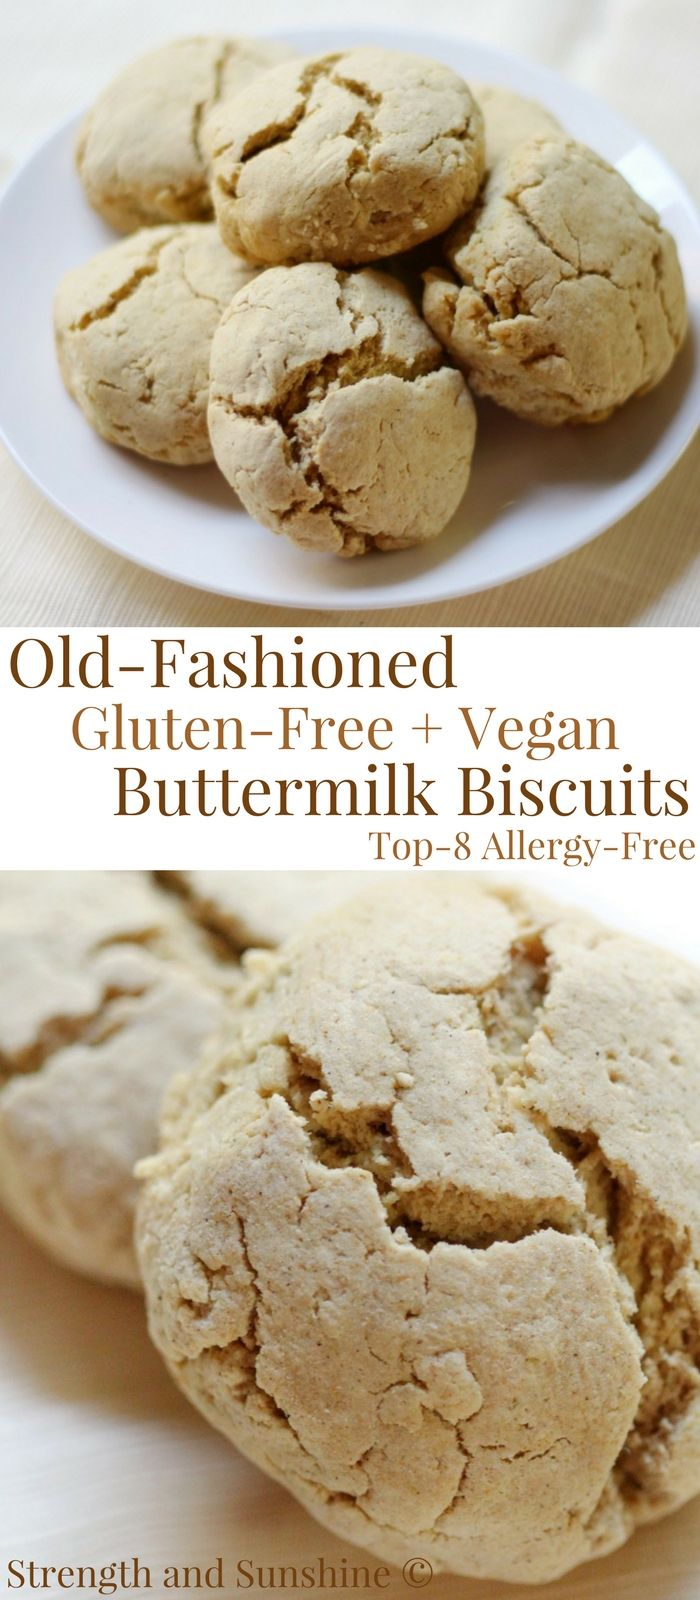 Old-Fashioned Gluten-Free + Vegan Buttermilk Biscuits (Allergy-Free) | Strength and Sunshine @RebeccaGF666 The best authentic Old-Fashioned Gluten-Free & Vegan Buttermilk Biscuits just like your Southern grandmother used to make! Soft, tender, flaky, and begging to be slathered with dairy-free butter, jam, or covered in gravy. This recipe is top-8 allergy-free and only 6 ingredients; in 12 minutes you'll have warm pull-apart buns ready on the table! #buttermilkbiscuits #biscuits #glutenfree